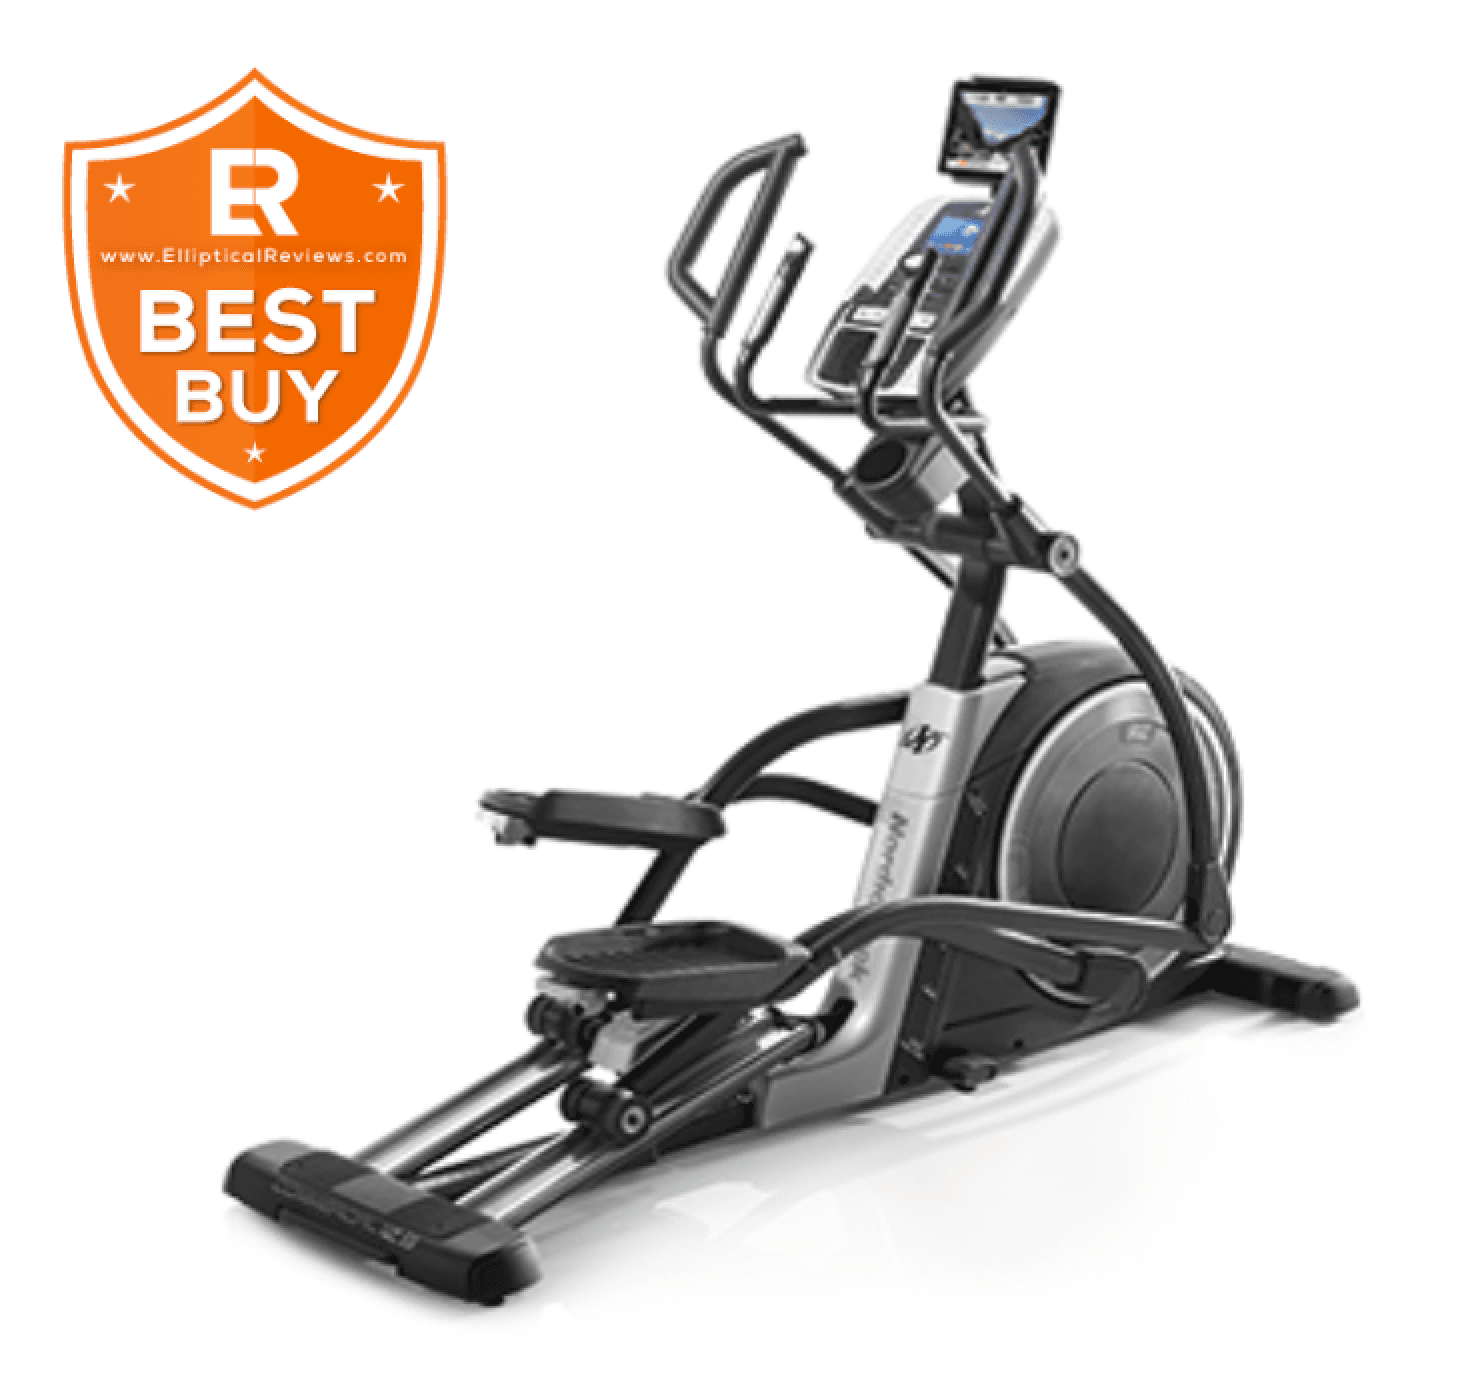 NordicTrack Elite 12.9T Elliptical Machine